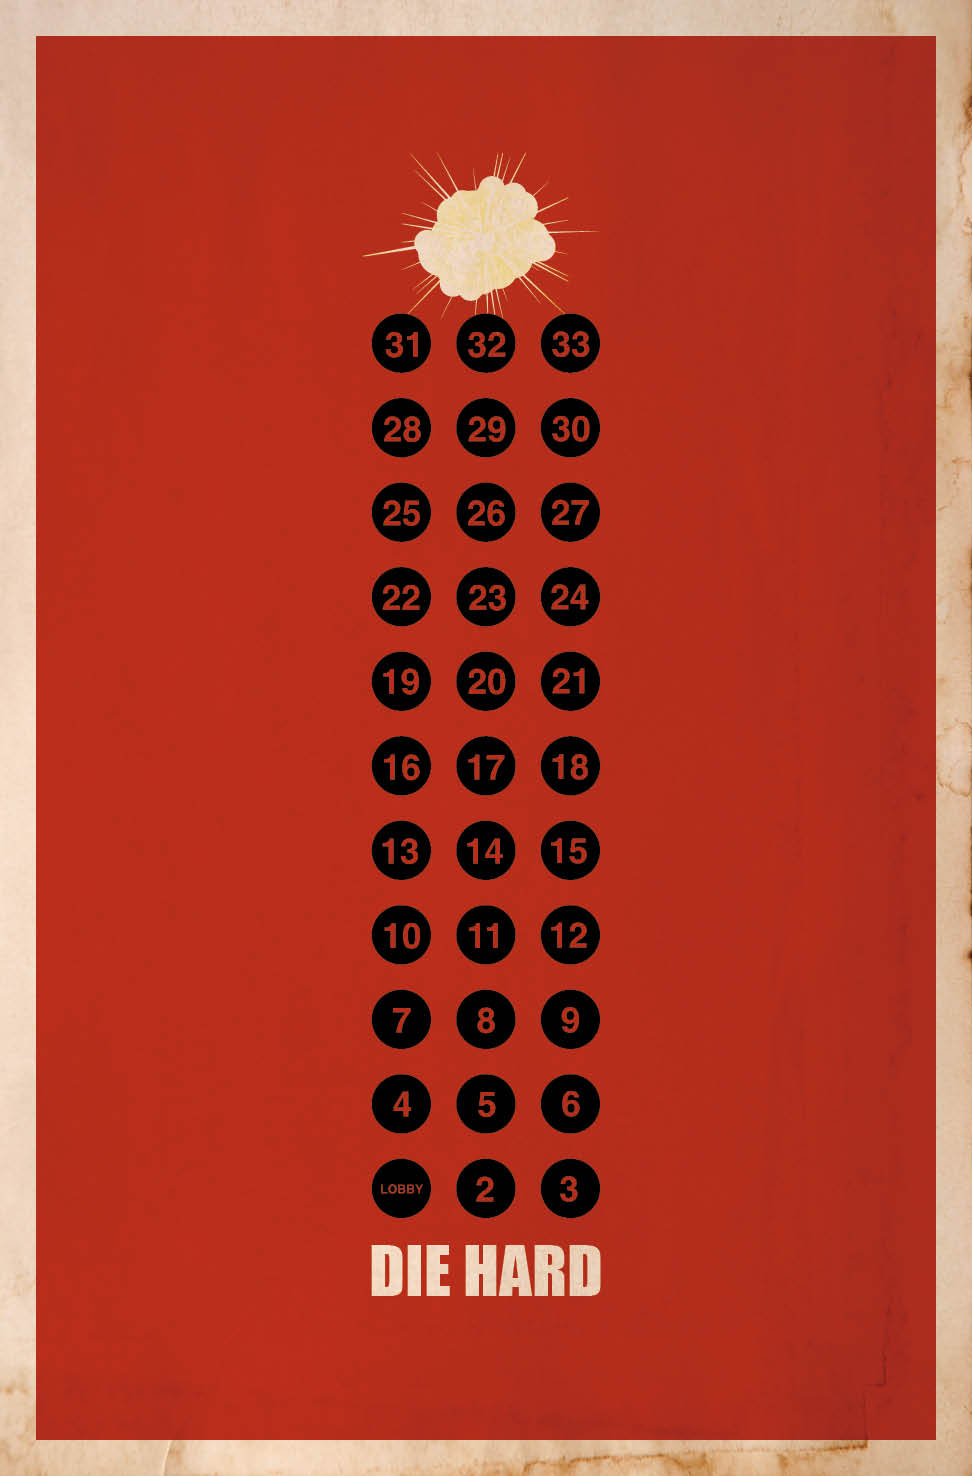 Cool Collection of Minimalist Movie Poster Art — GeekTyrant